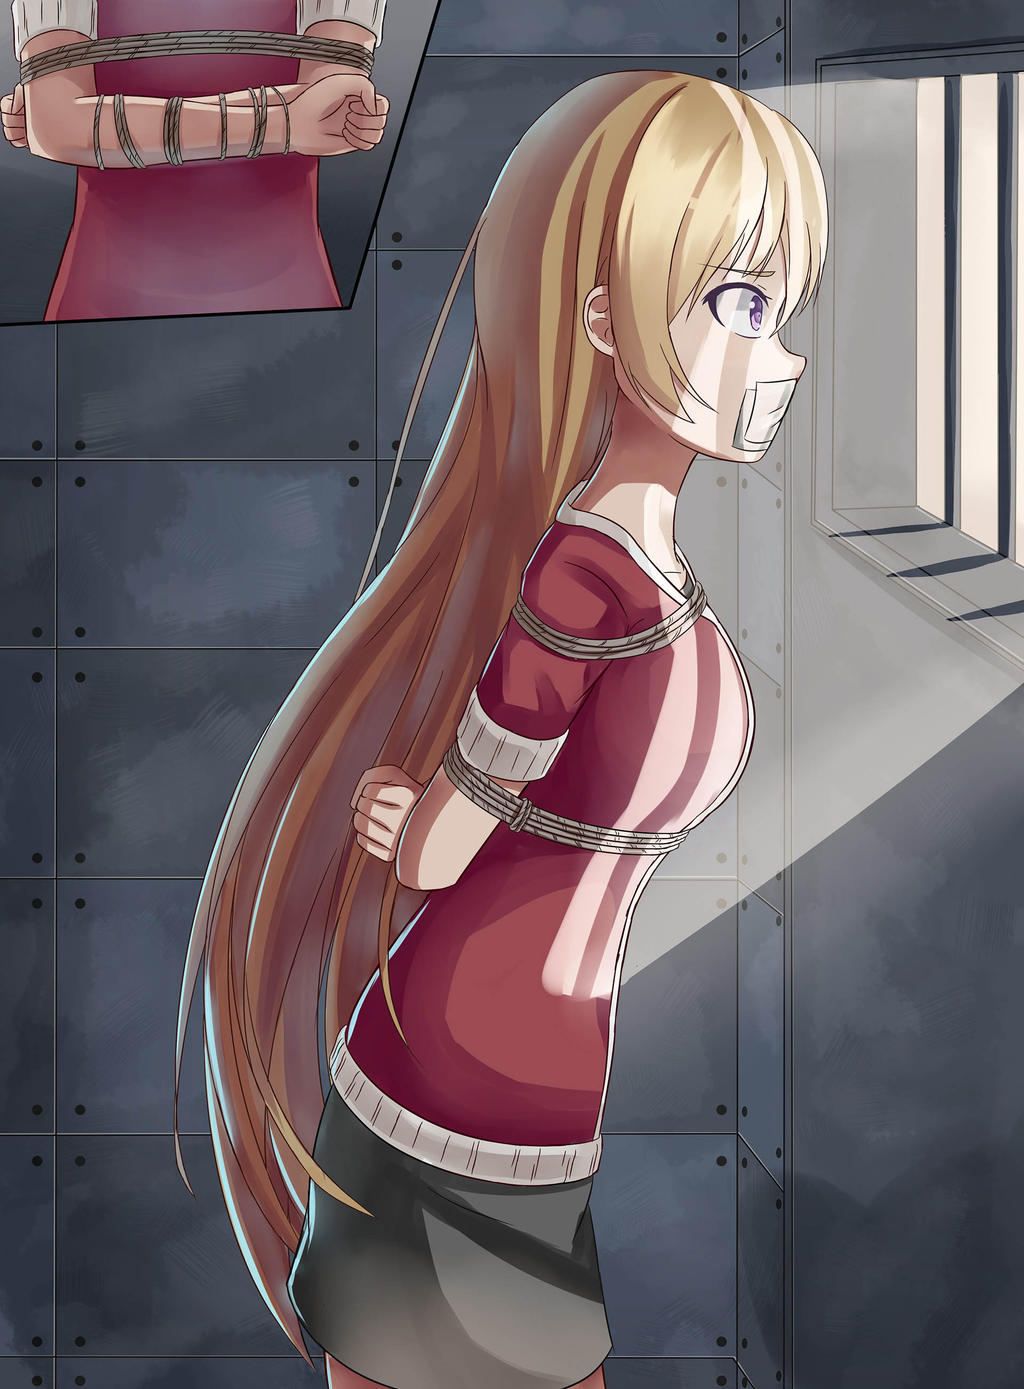 Hostage by cailin020 on DeviantArt